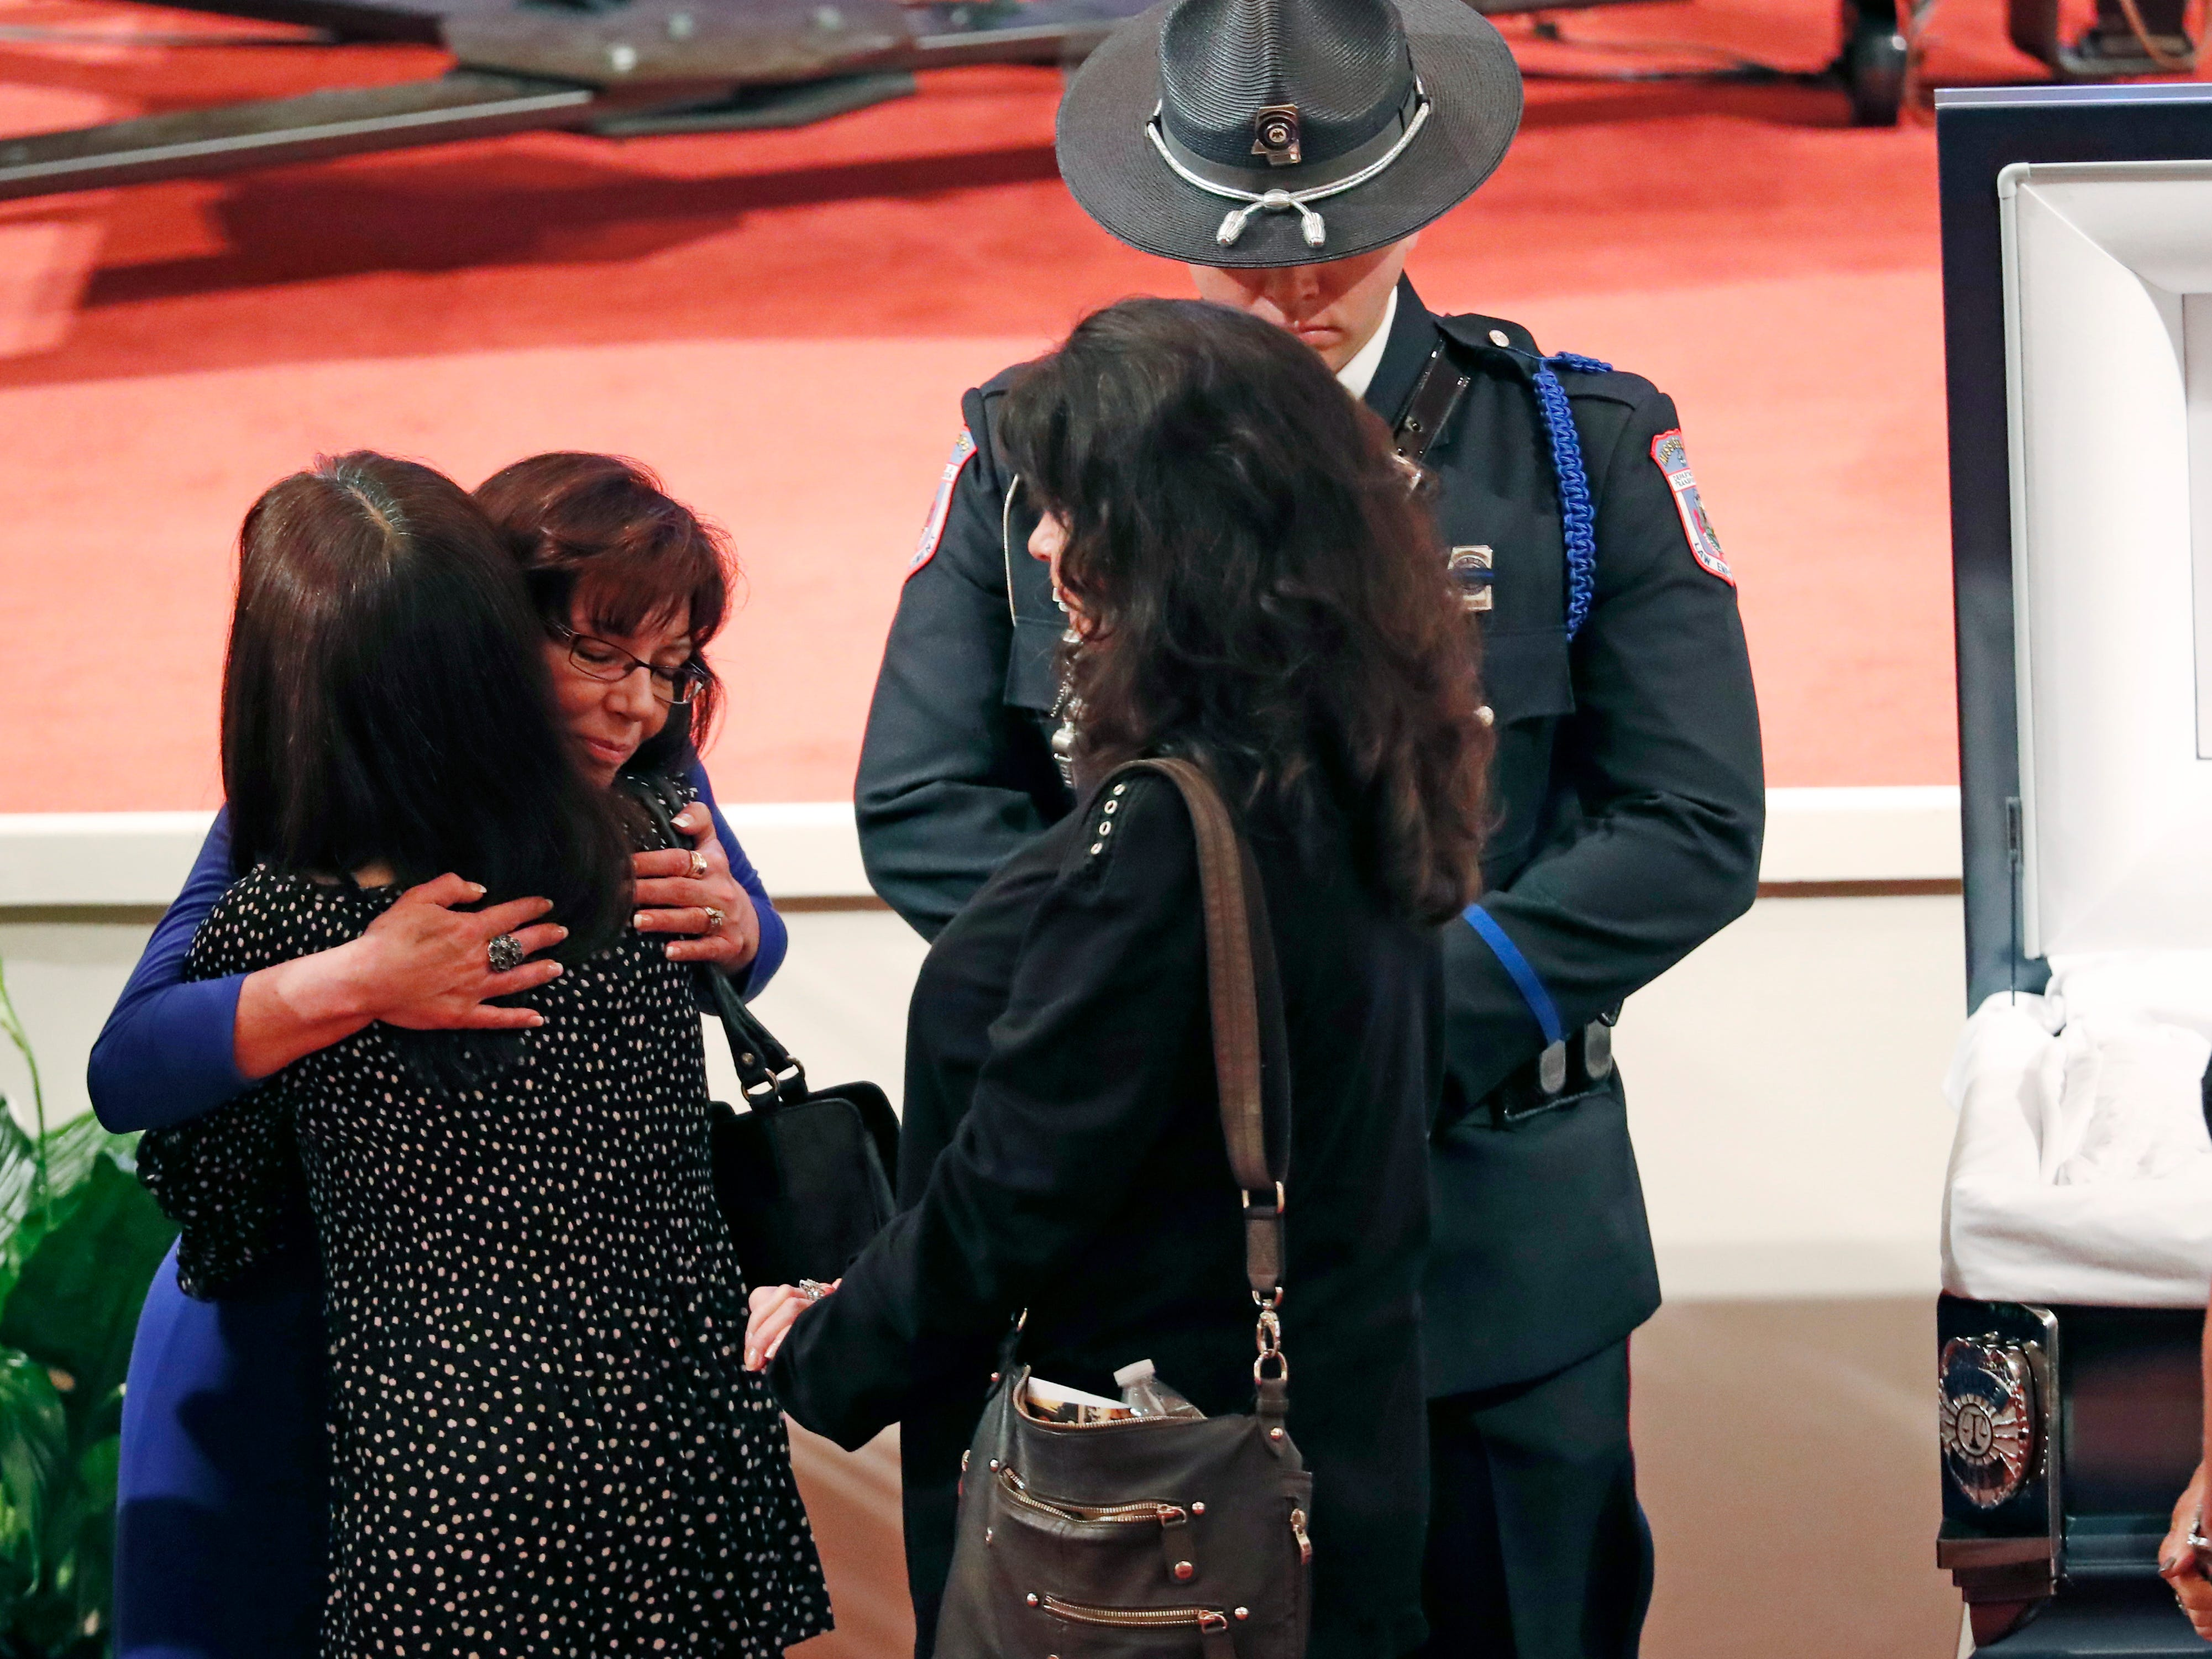 Pamela McKeithen, widow of officer Robert S. McKeithen, second from left, hugs a mourner as a member of a law enforcement agency honor guard, stands watch, as people pay their respects to McKeithen and his family in the First Baptist Church of Biloxi, Monday morning, May 13, 2019, prior to the funeral service.